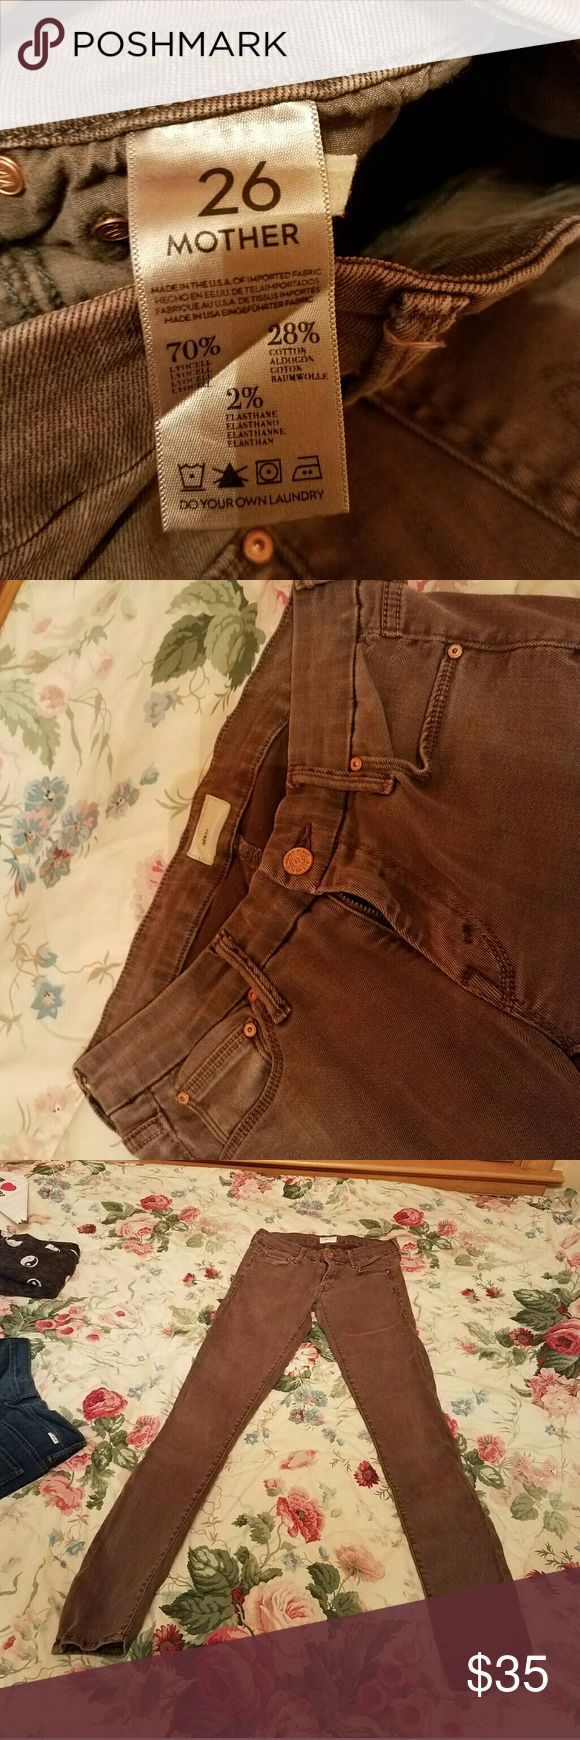 "Mother jeans Size 26 brown ""the looker"" style I'm am selling these jeans ""jegging fit but true jean material 70% lyocell, 28% cotton, and 2% elastane. Feels soft like a jegging, fit like a jegging, but the sewing and look are like regular jeans. I am normally anywhere from a 0 to a size 2 and these fit no matter what because of their natural spandexy nature. I bought them from nord rack when I went through a colored jean phase. Straight leg cut/tapers a bit MOTHER Jeans Straight Leg"